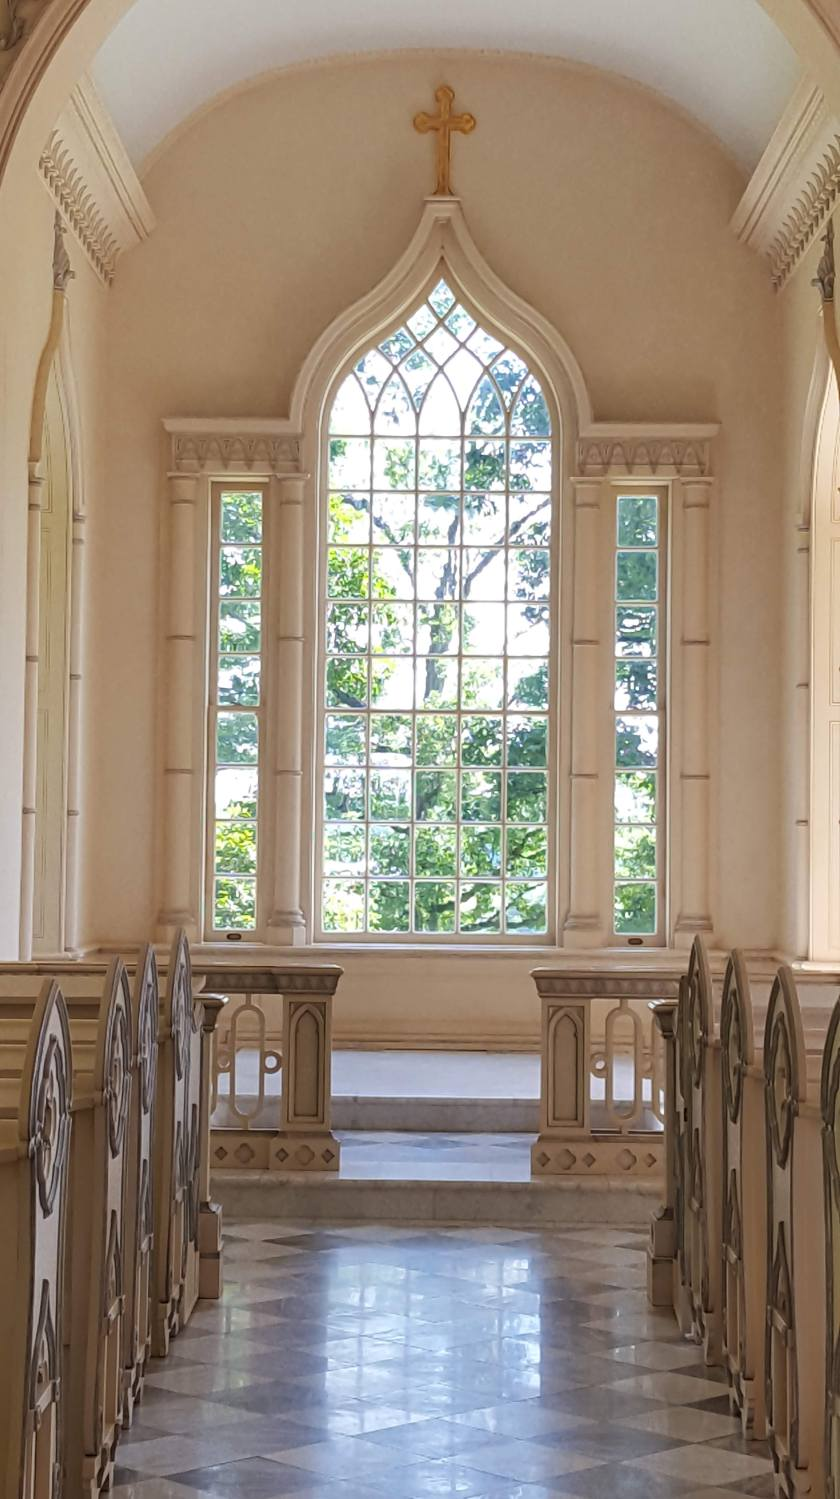 Albemarle Estate chapel window, Charlottesville, VA